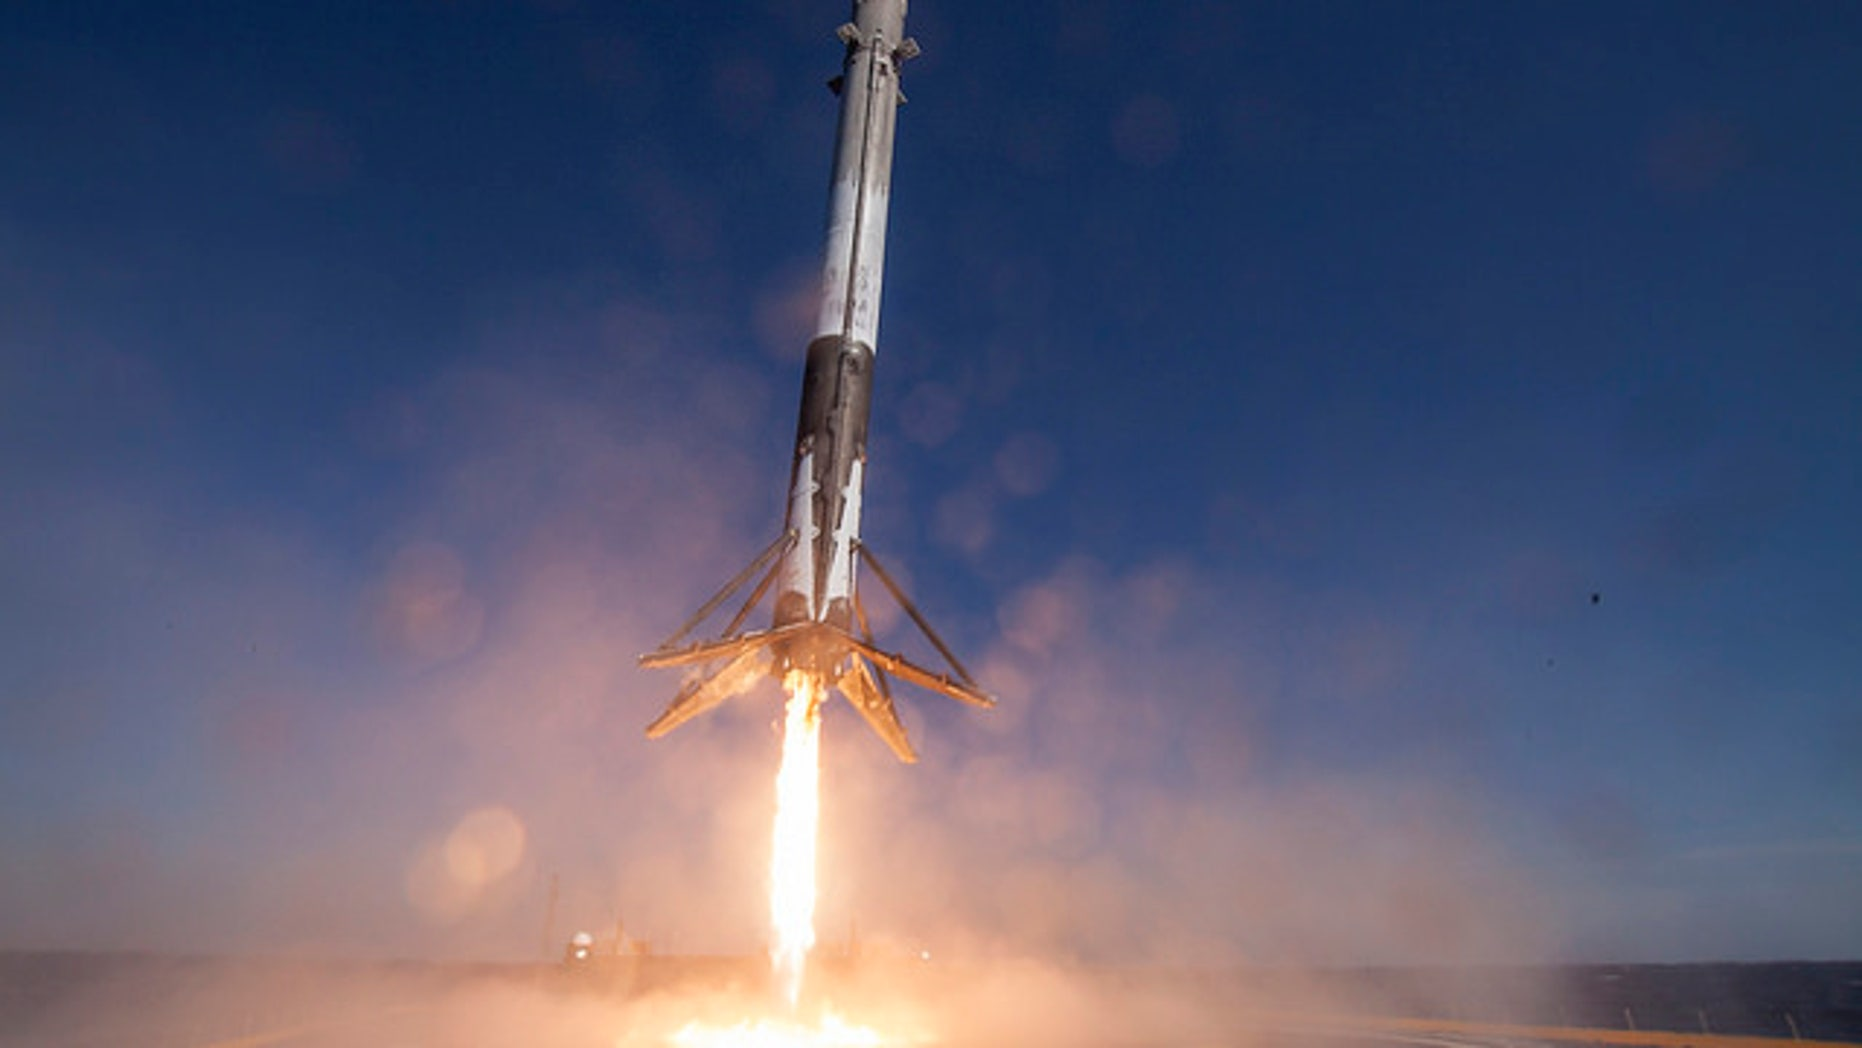 """The first stage of SpaceX's Falcon 9 rocket lands on the deck of the robotic ship """"Of Course I Still Love You"""" on April 8, 2016 (Credit: SpaceX)"""